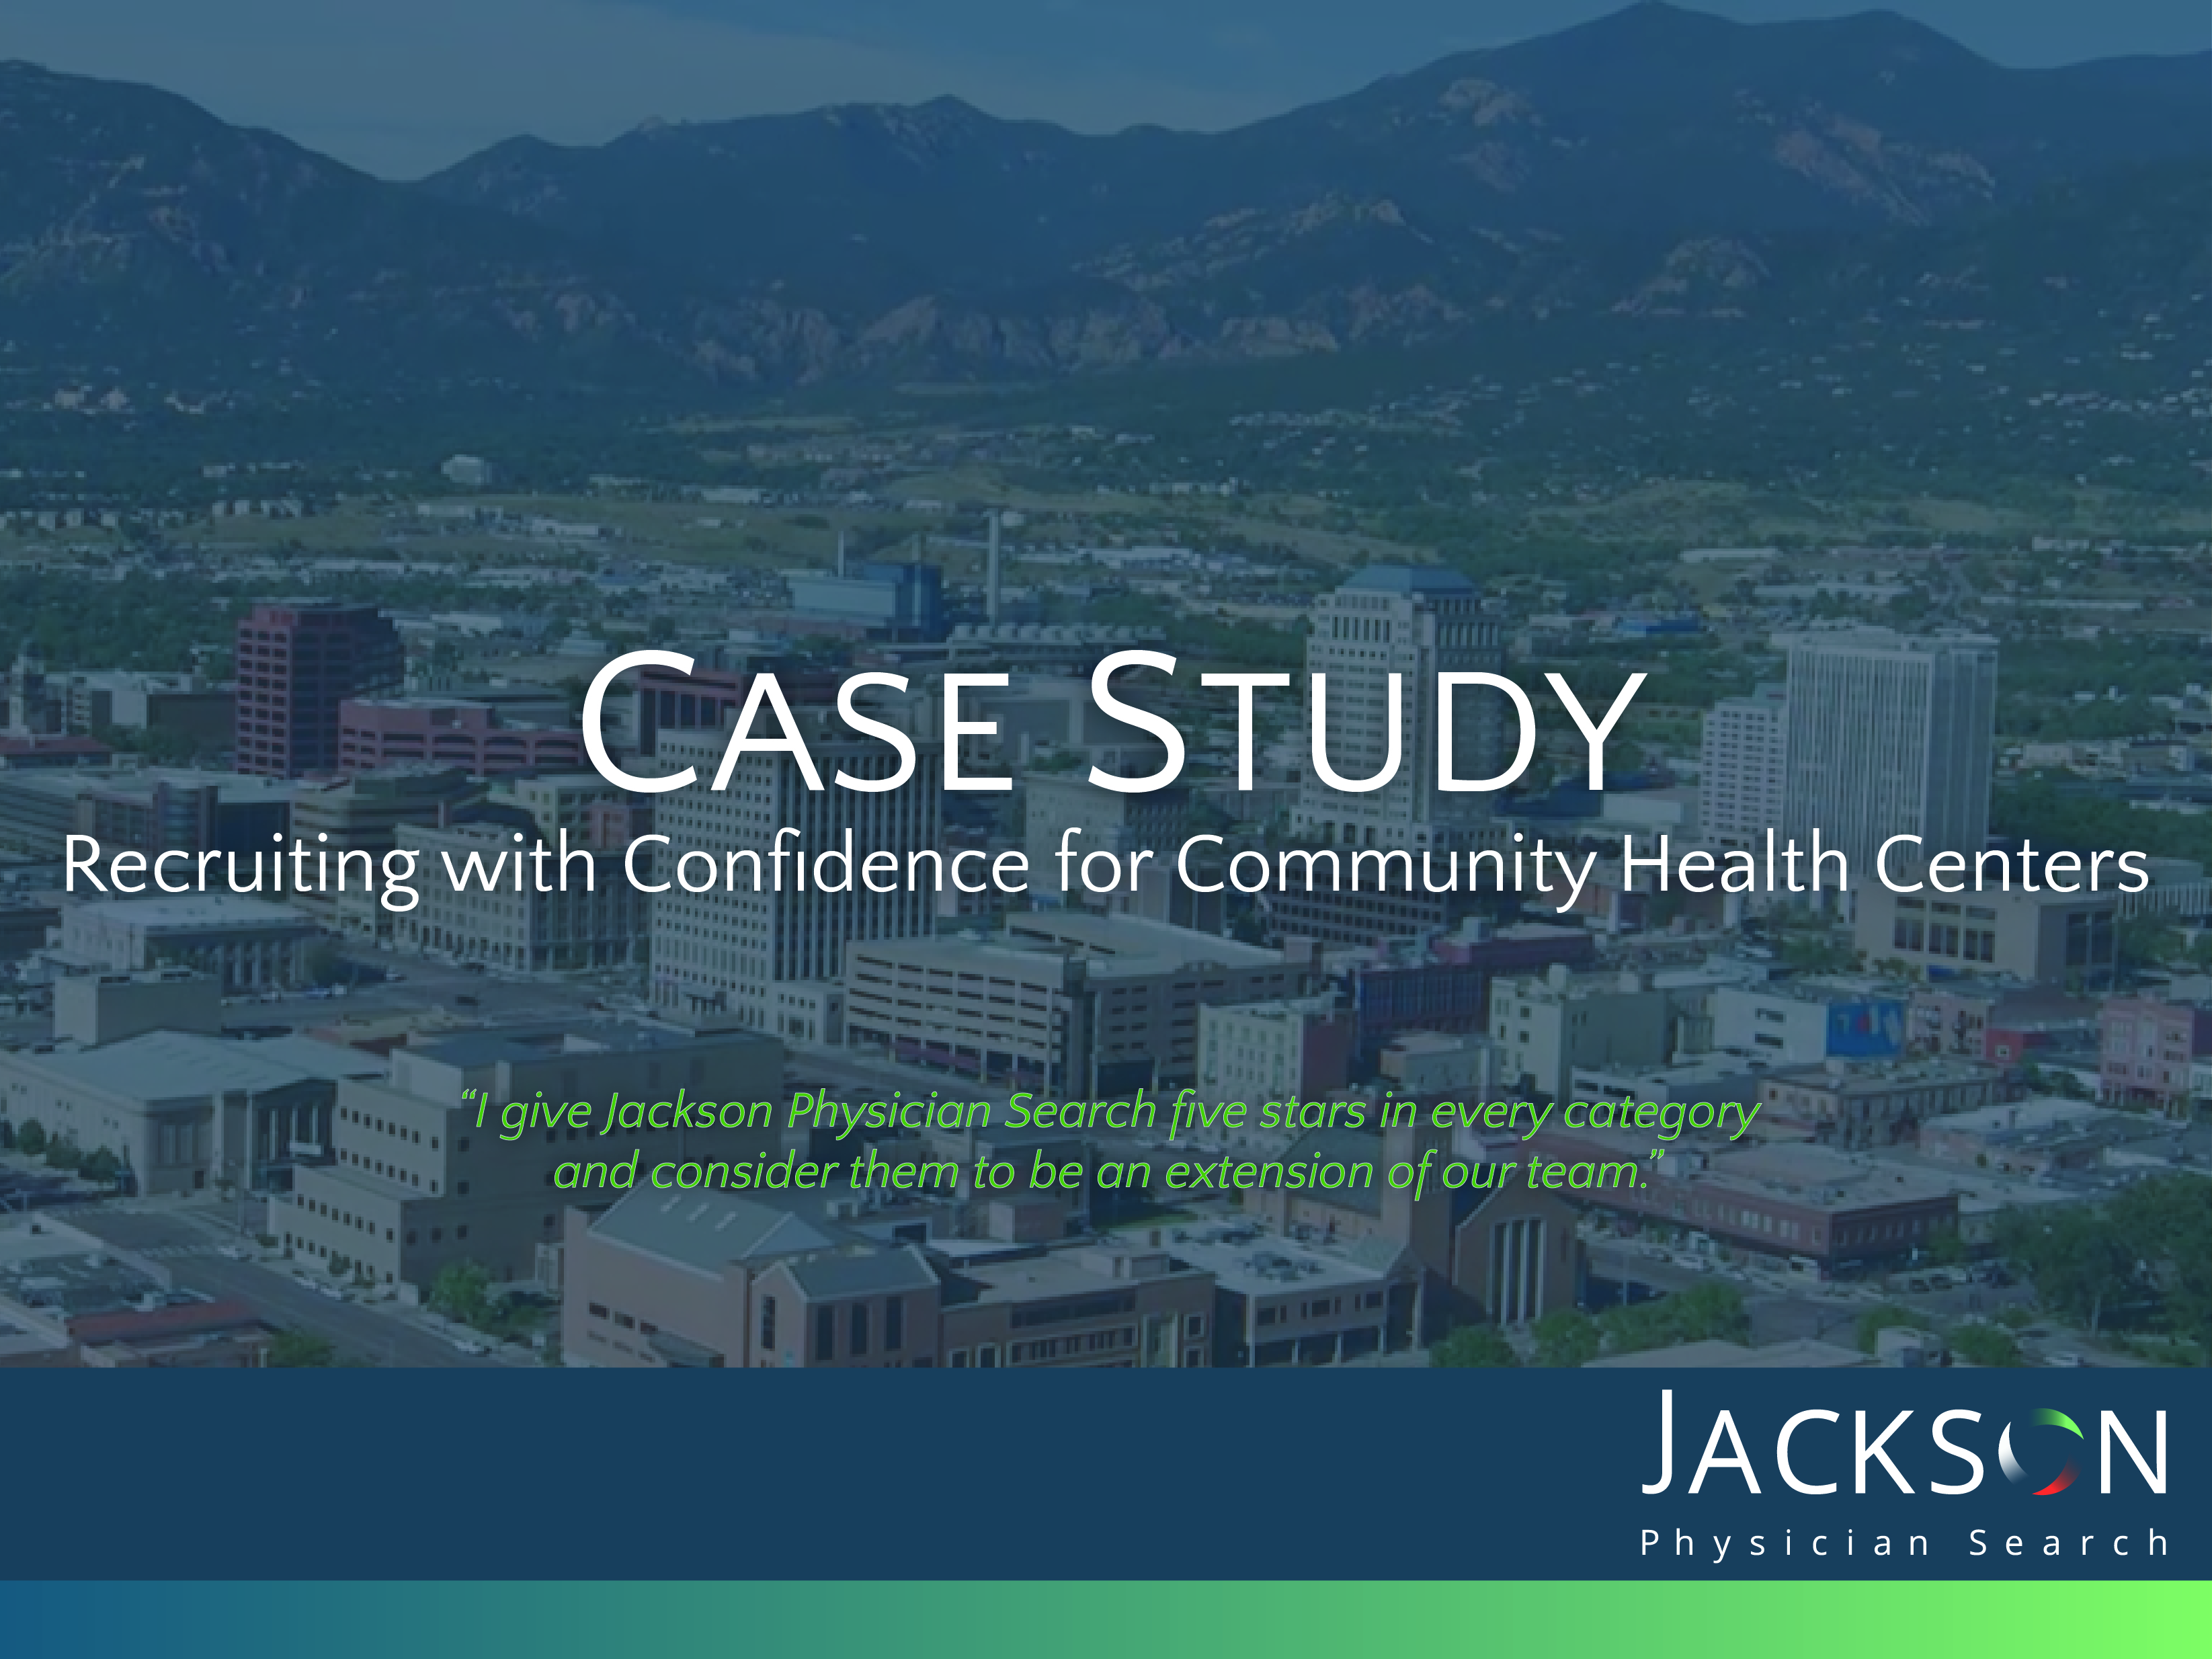 [Case Study] Recruiting with Confidence for Community Health Centers